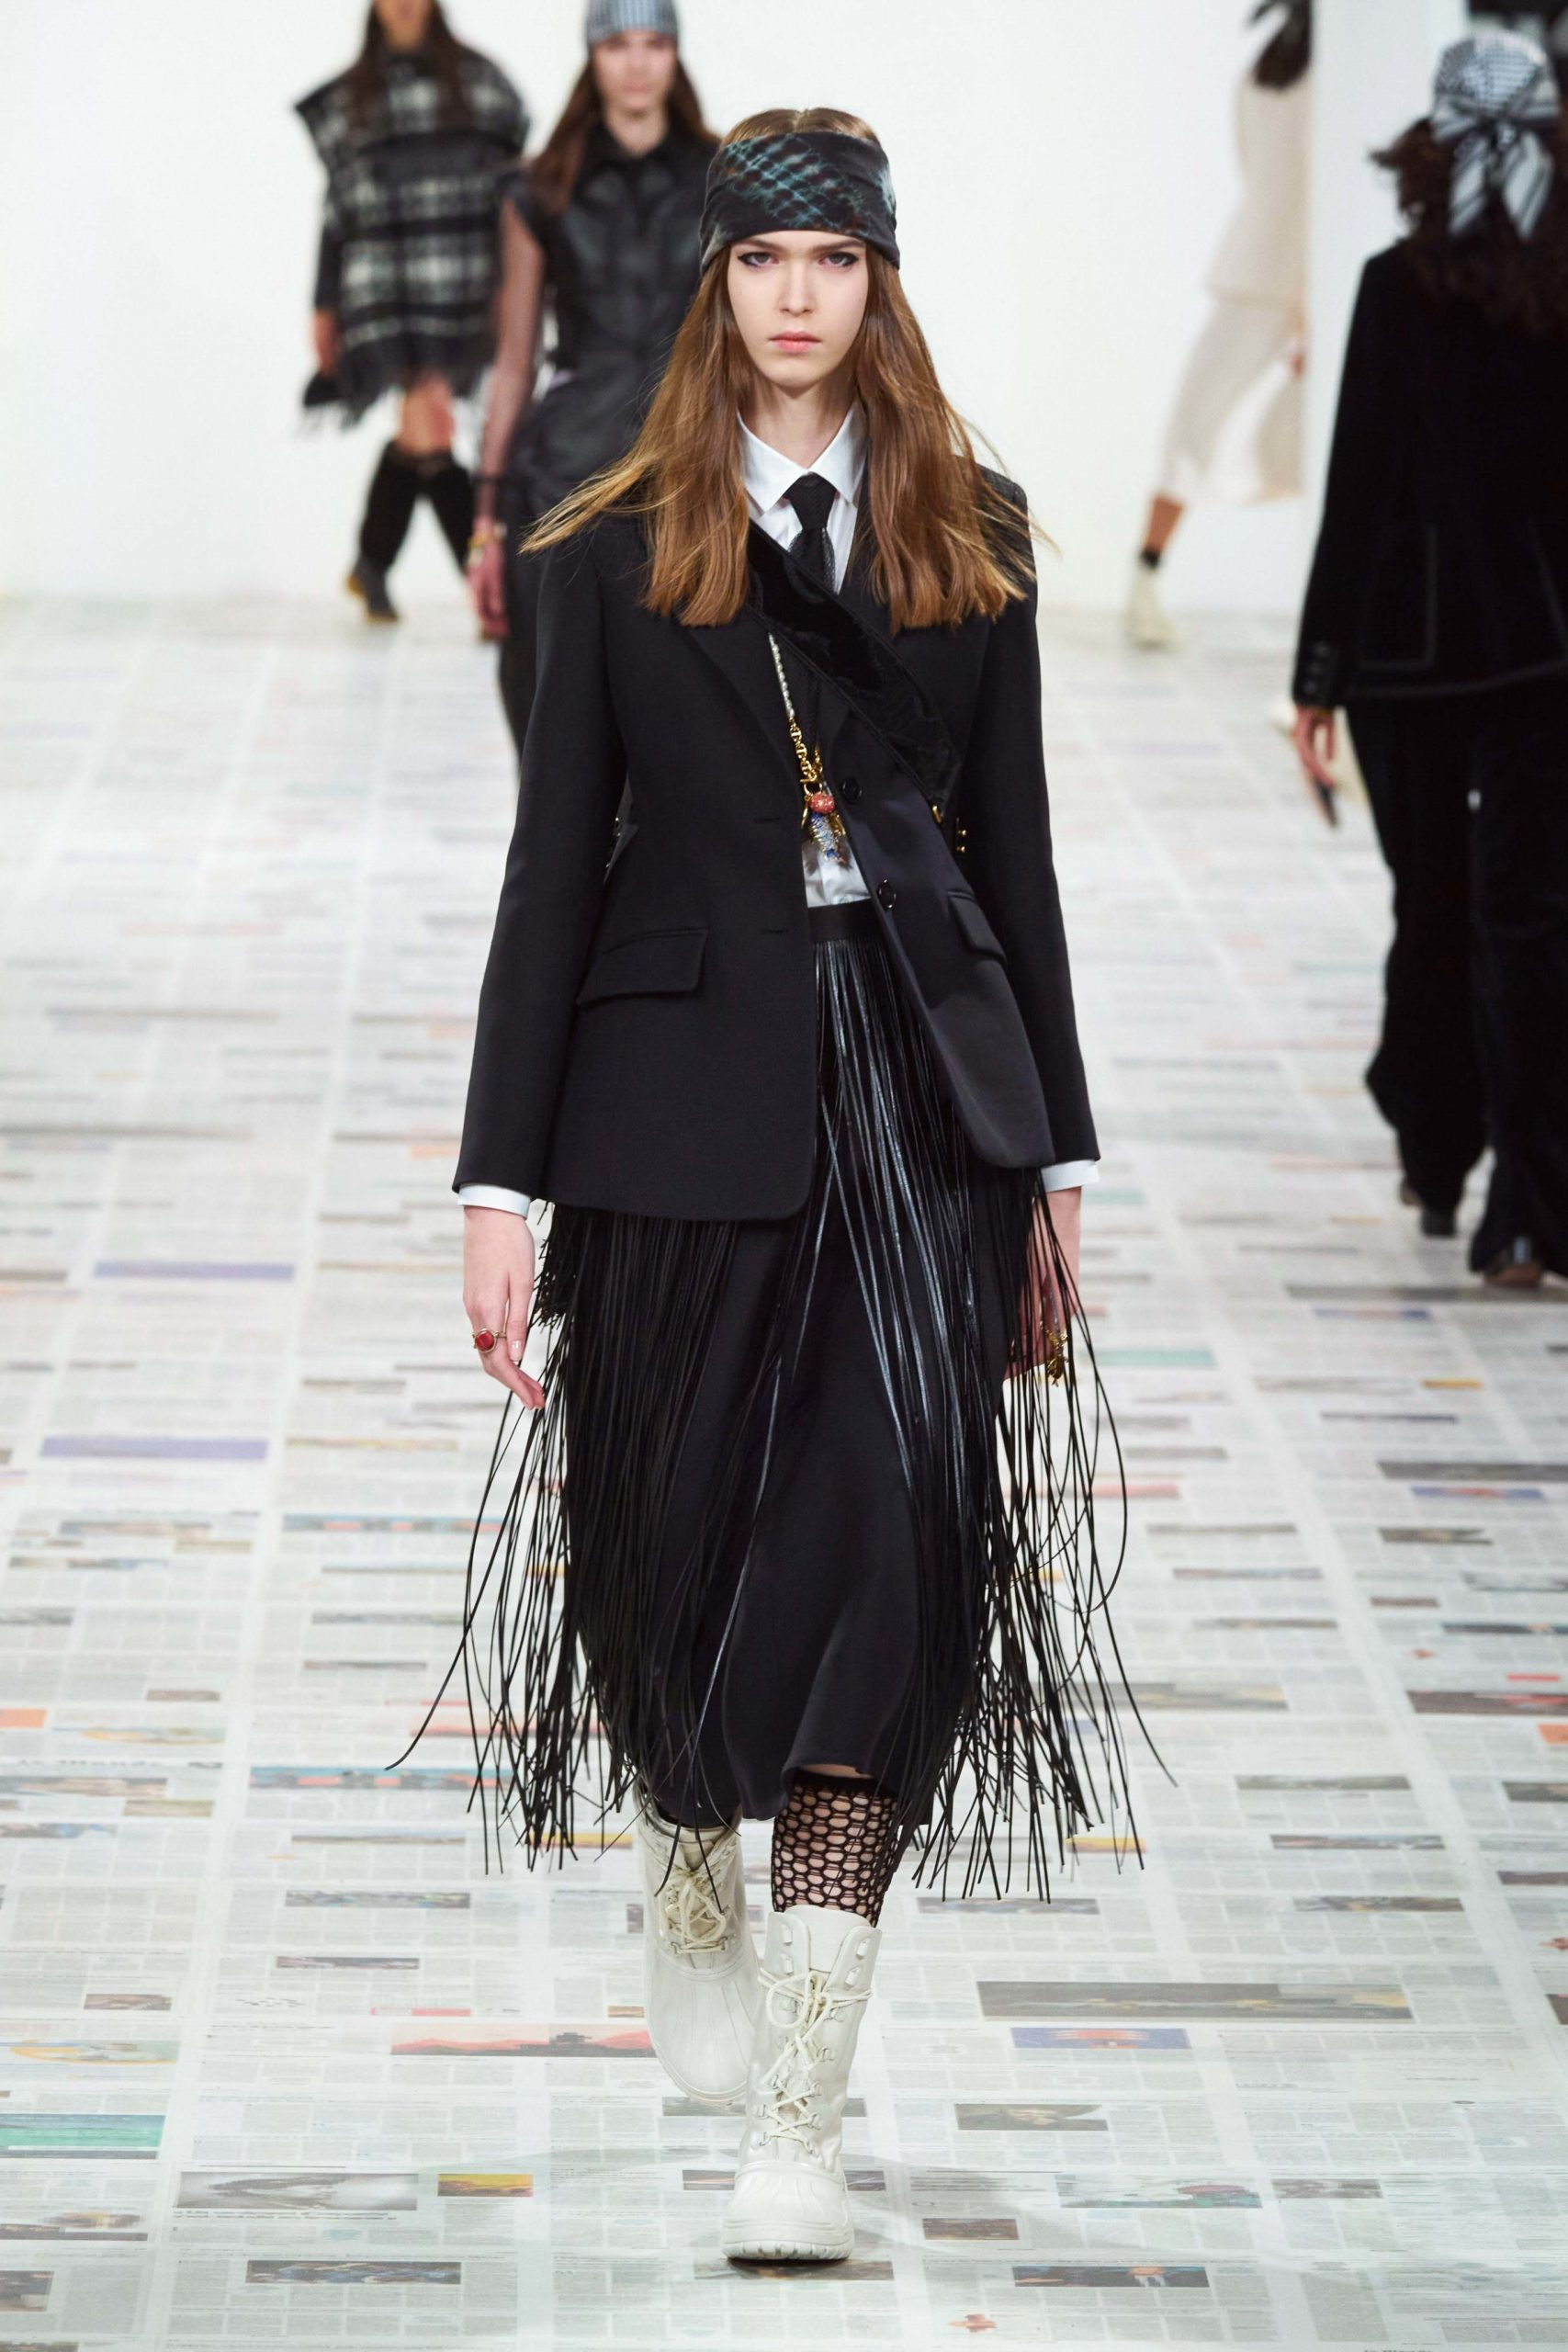 Dior Fall Winter 2020 trends runway coverage Ready To Wear Vogue fringes